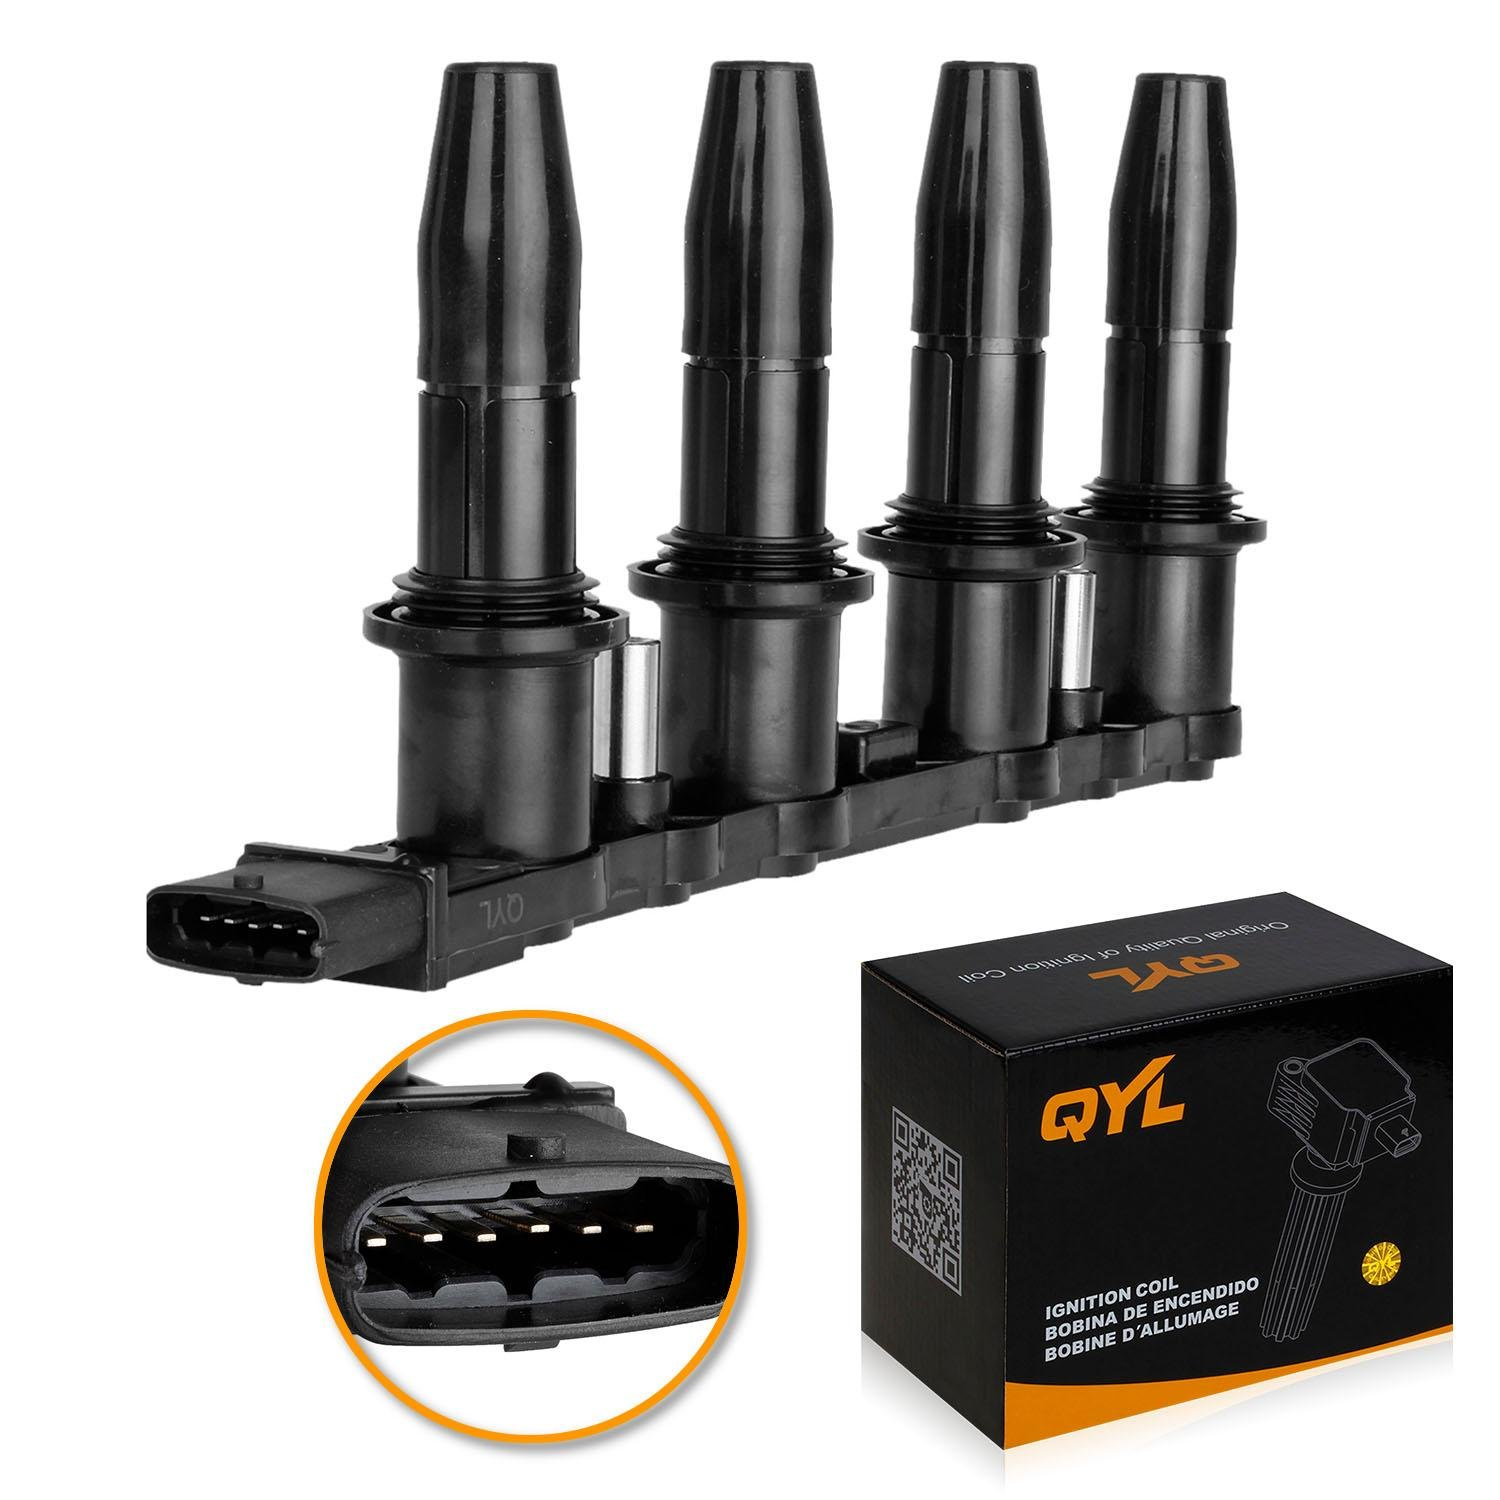 QYL Ignition Coil Pack for 2008 2009 Saturn Astra 1.8L I4 UF606 5C1763 C1706 522118 UF-606 by QYL